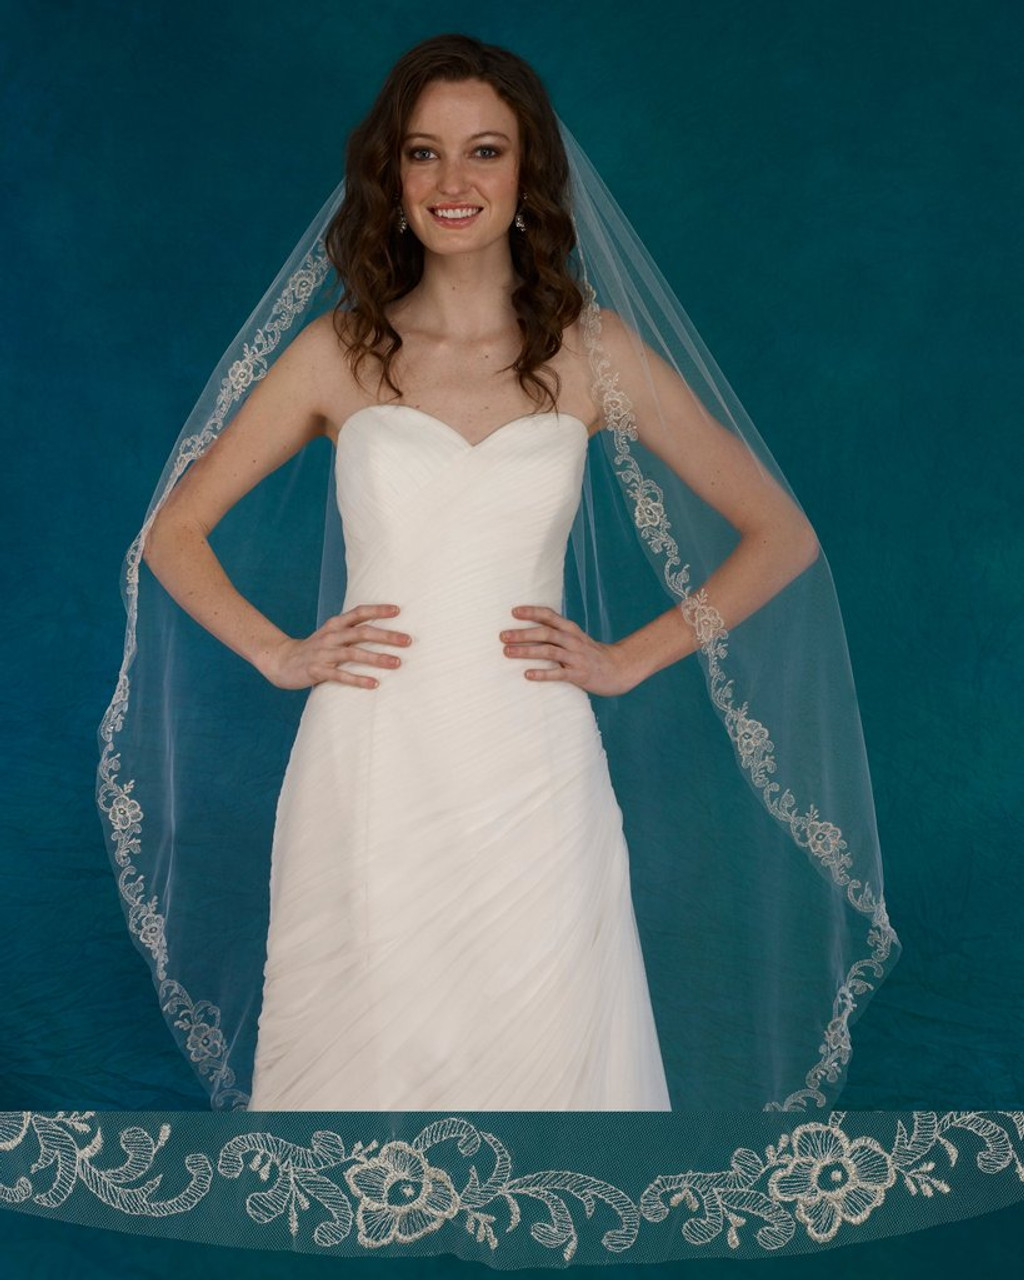 "Marionat Bridal Veils 3722 - 54"" Silver embroidered veil - The Bridal Veil Company"